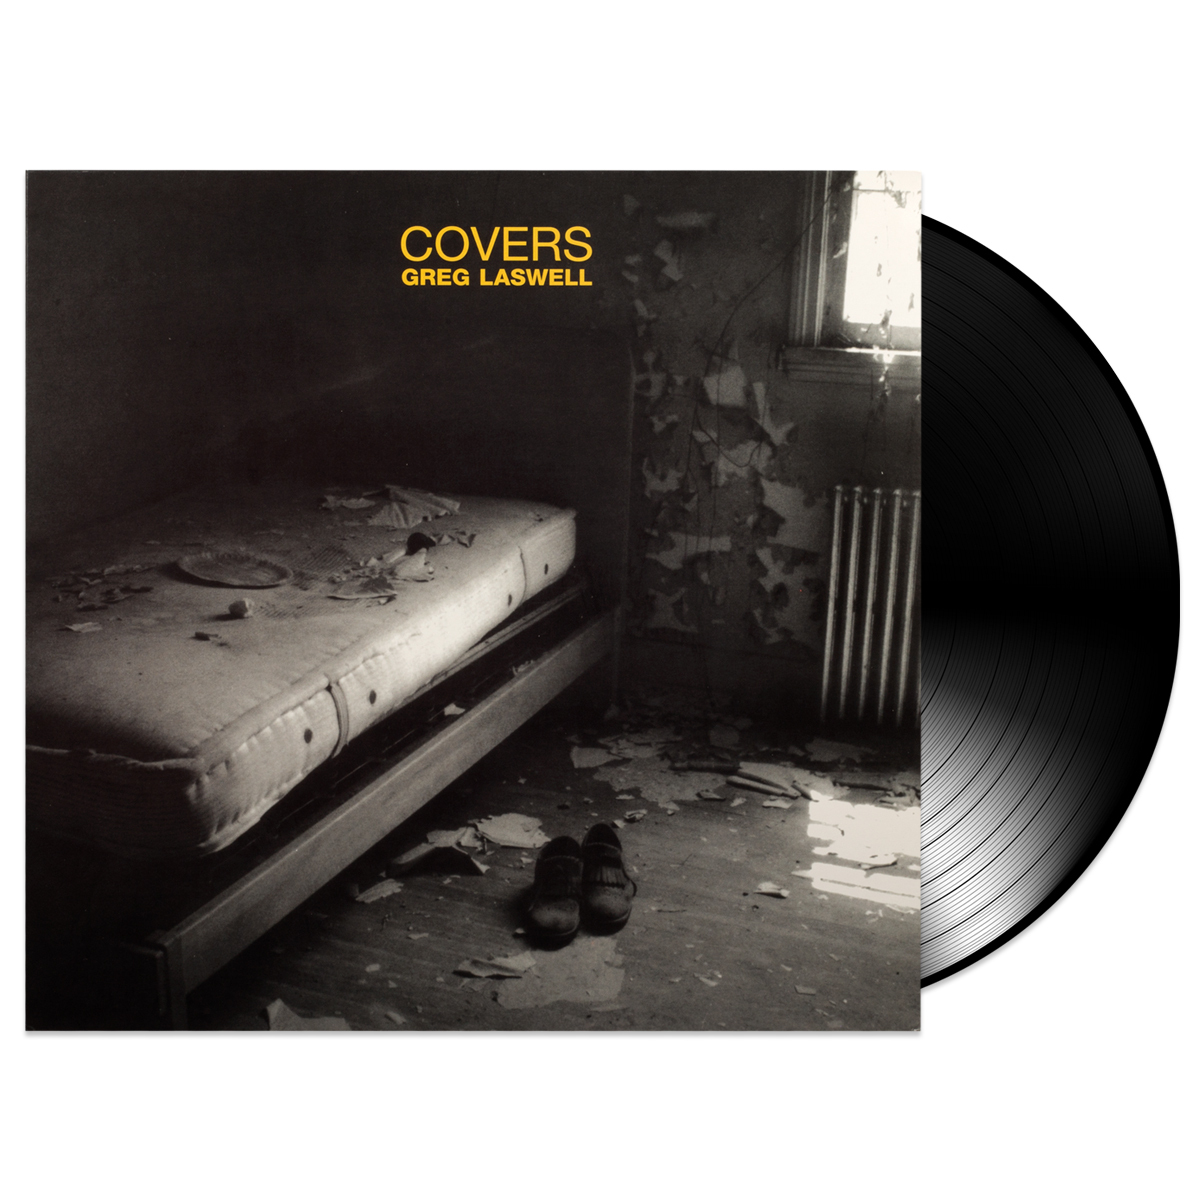 Covers Vinyl LP